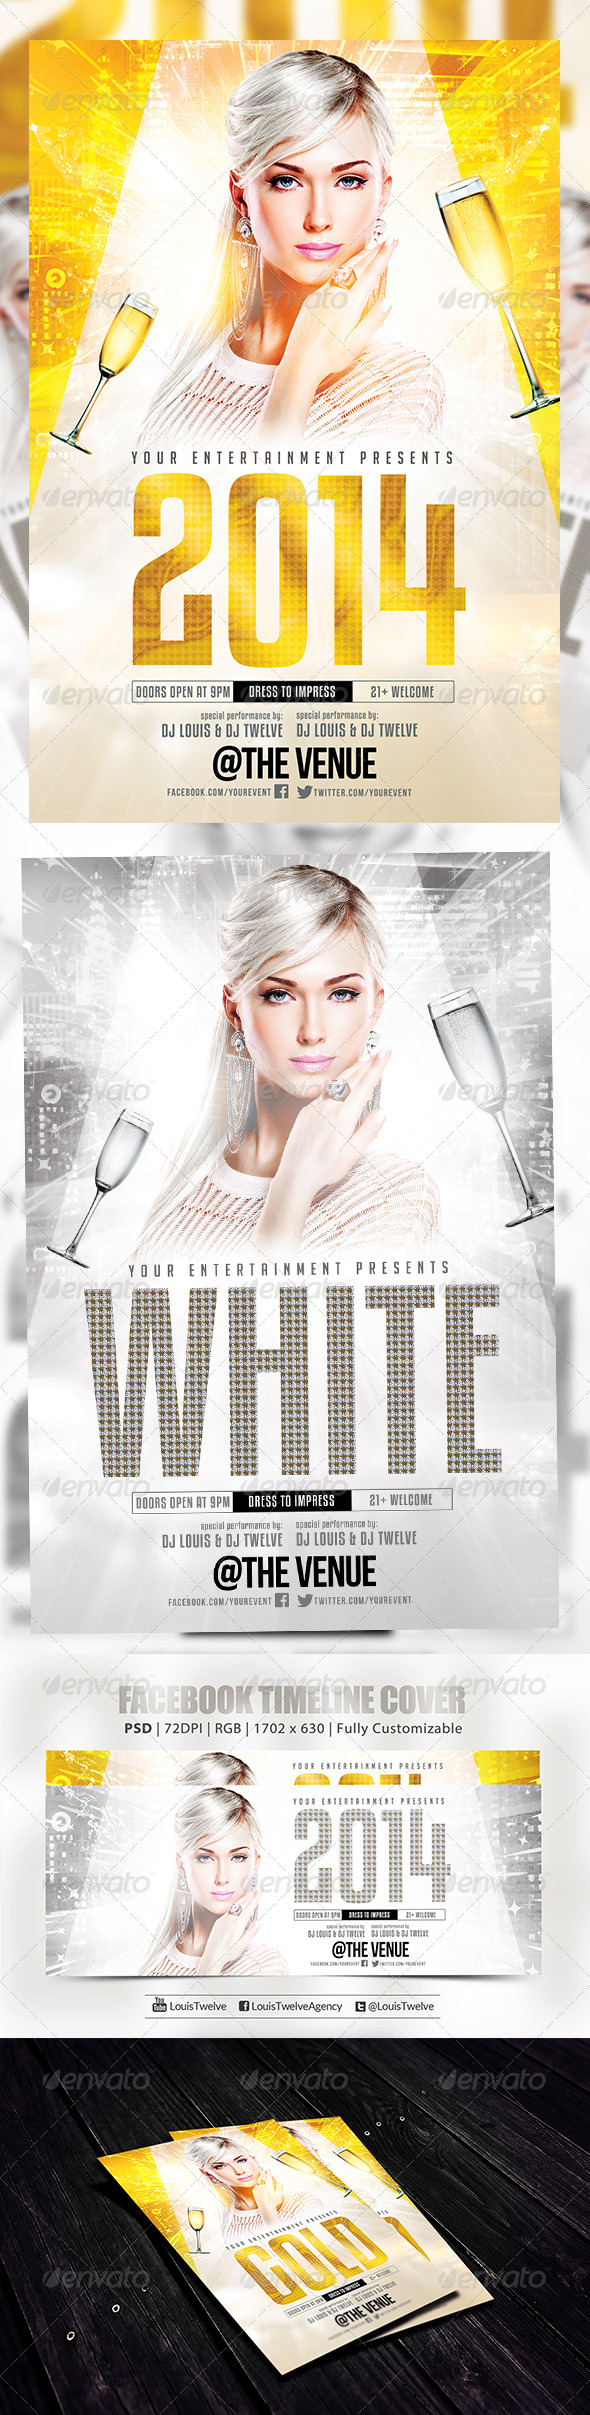 New Year or White Party | Flyer + FB Cover - Holidays Events